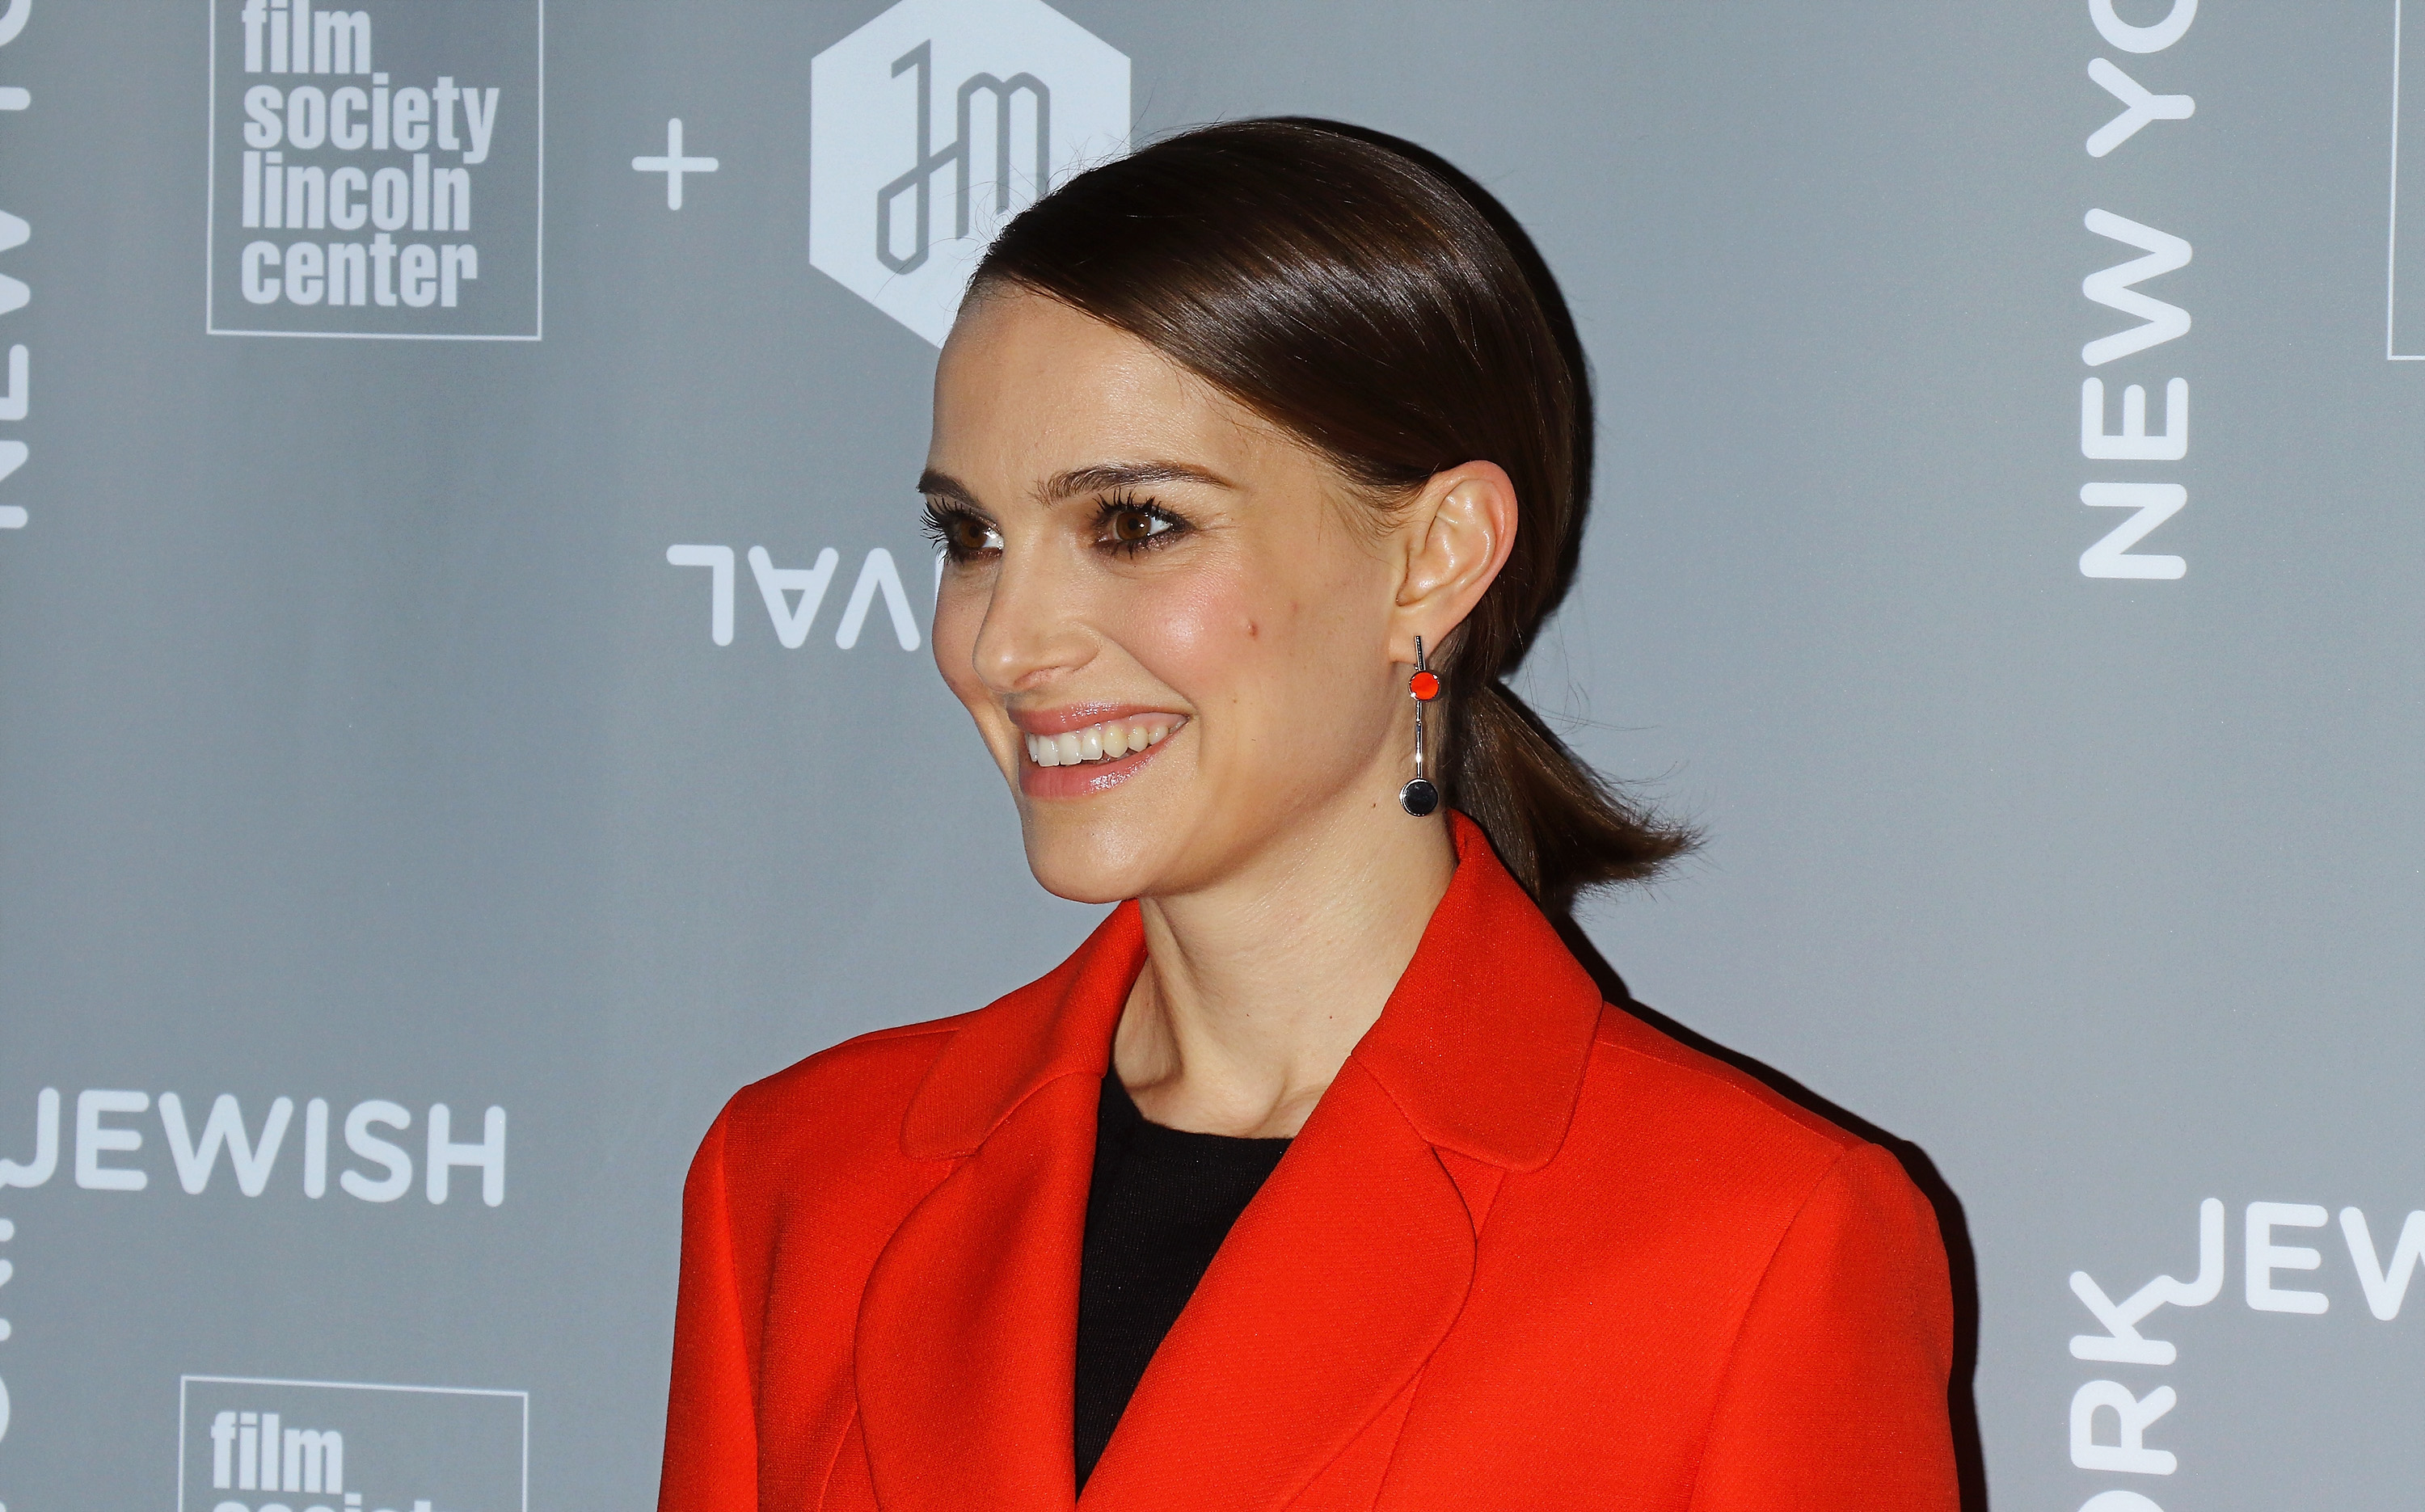 Actress Natalie Portman attends the 2016 New York Jewish Film Festival -  A Tale Of Love And Darkness  closing night screening at Walter Reade Theater on January 26, 2016 in New York City.